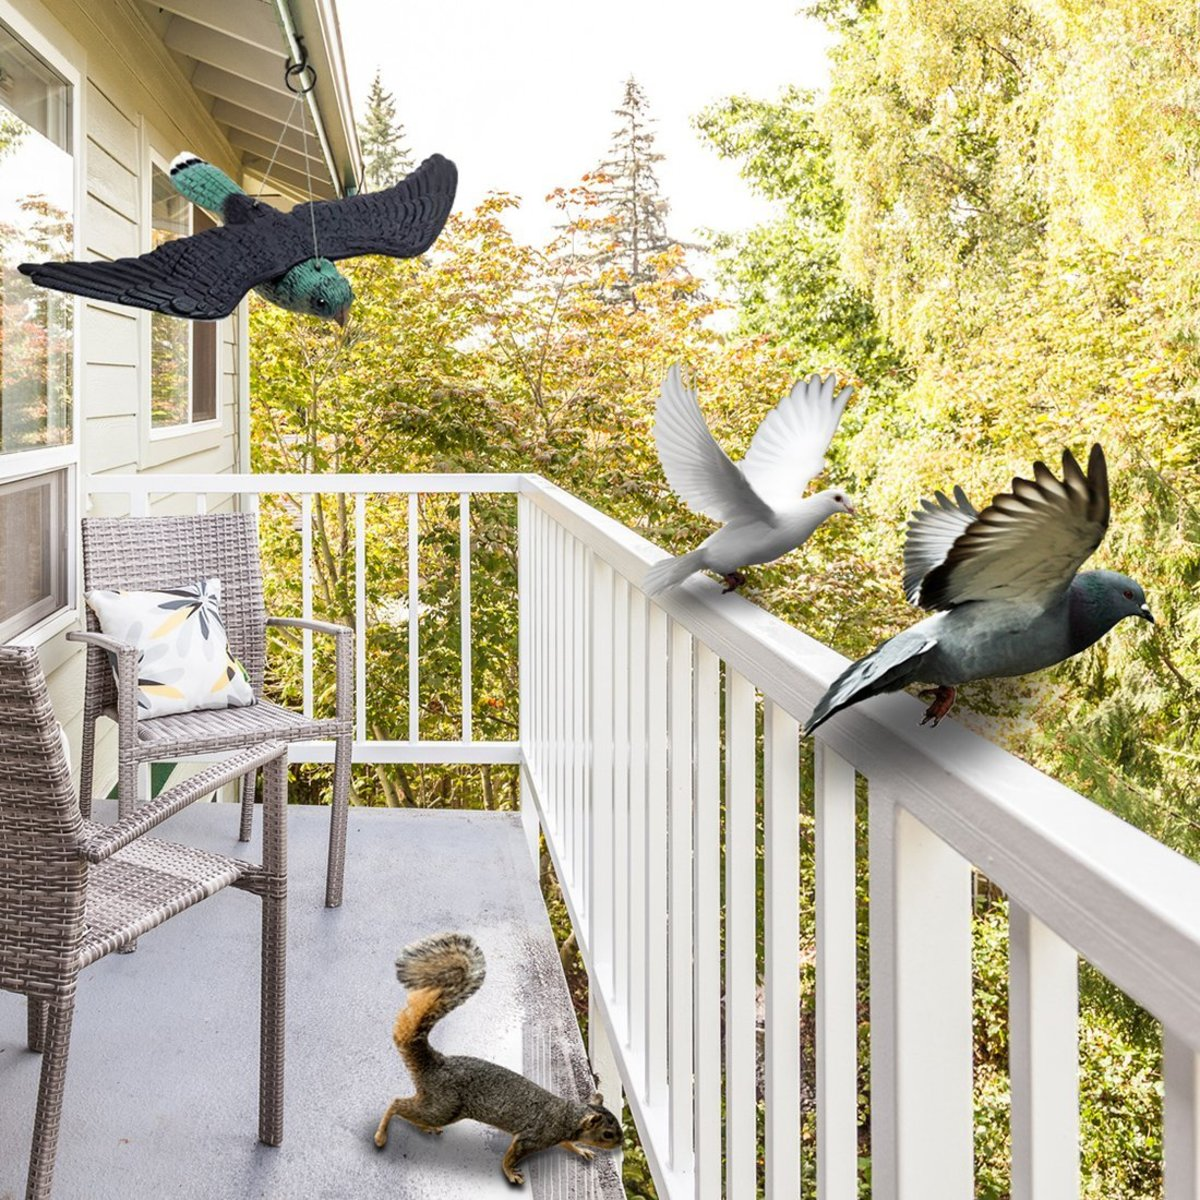 How To Keep Birds Off Of Patio Furniture Dengarden